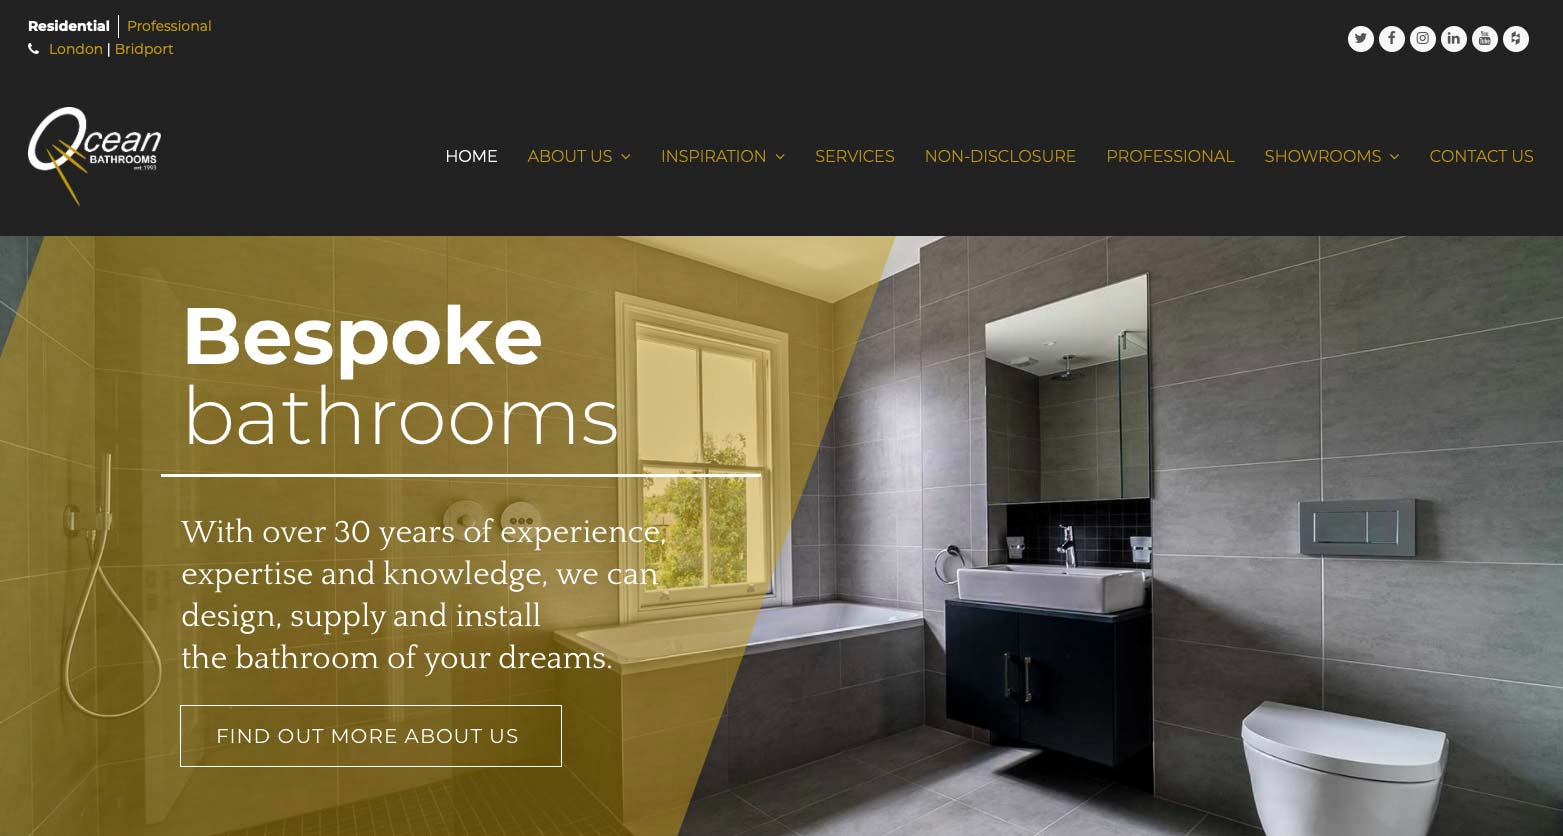 Ocean Bathrooms New Website Home Page